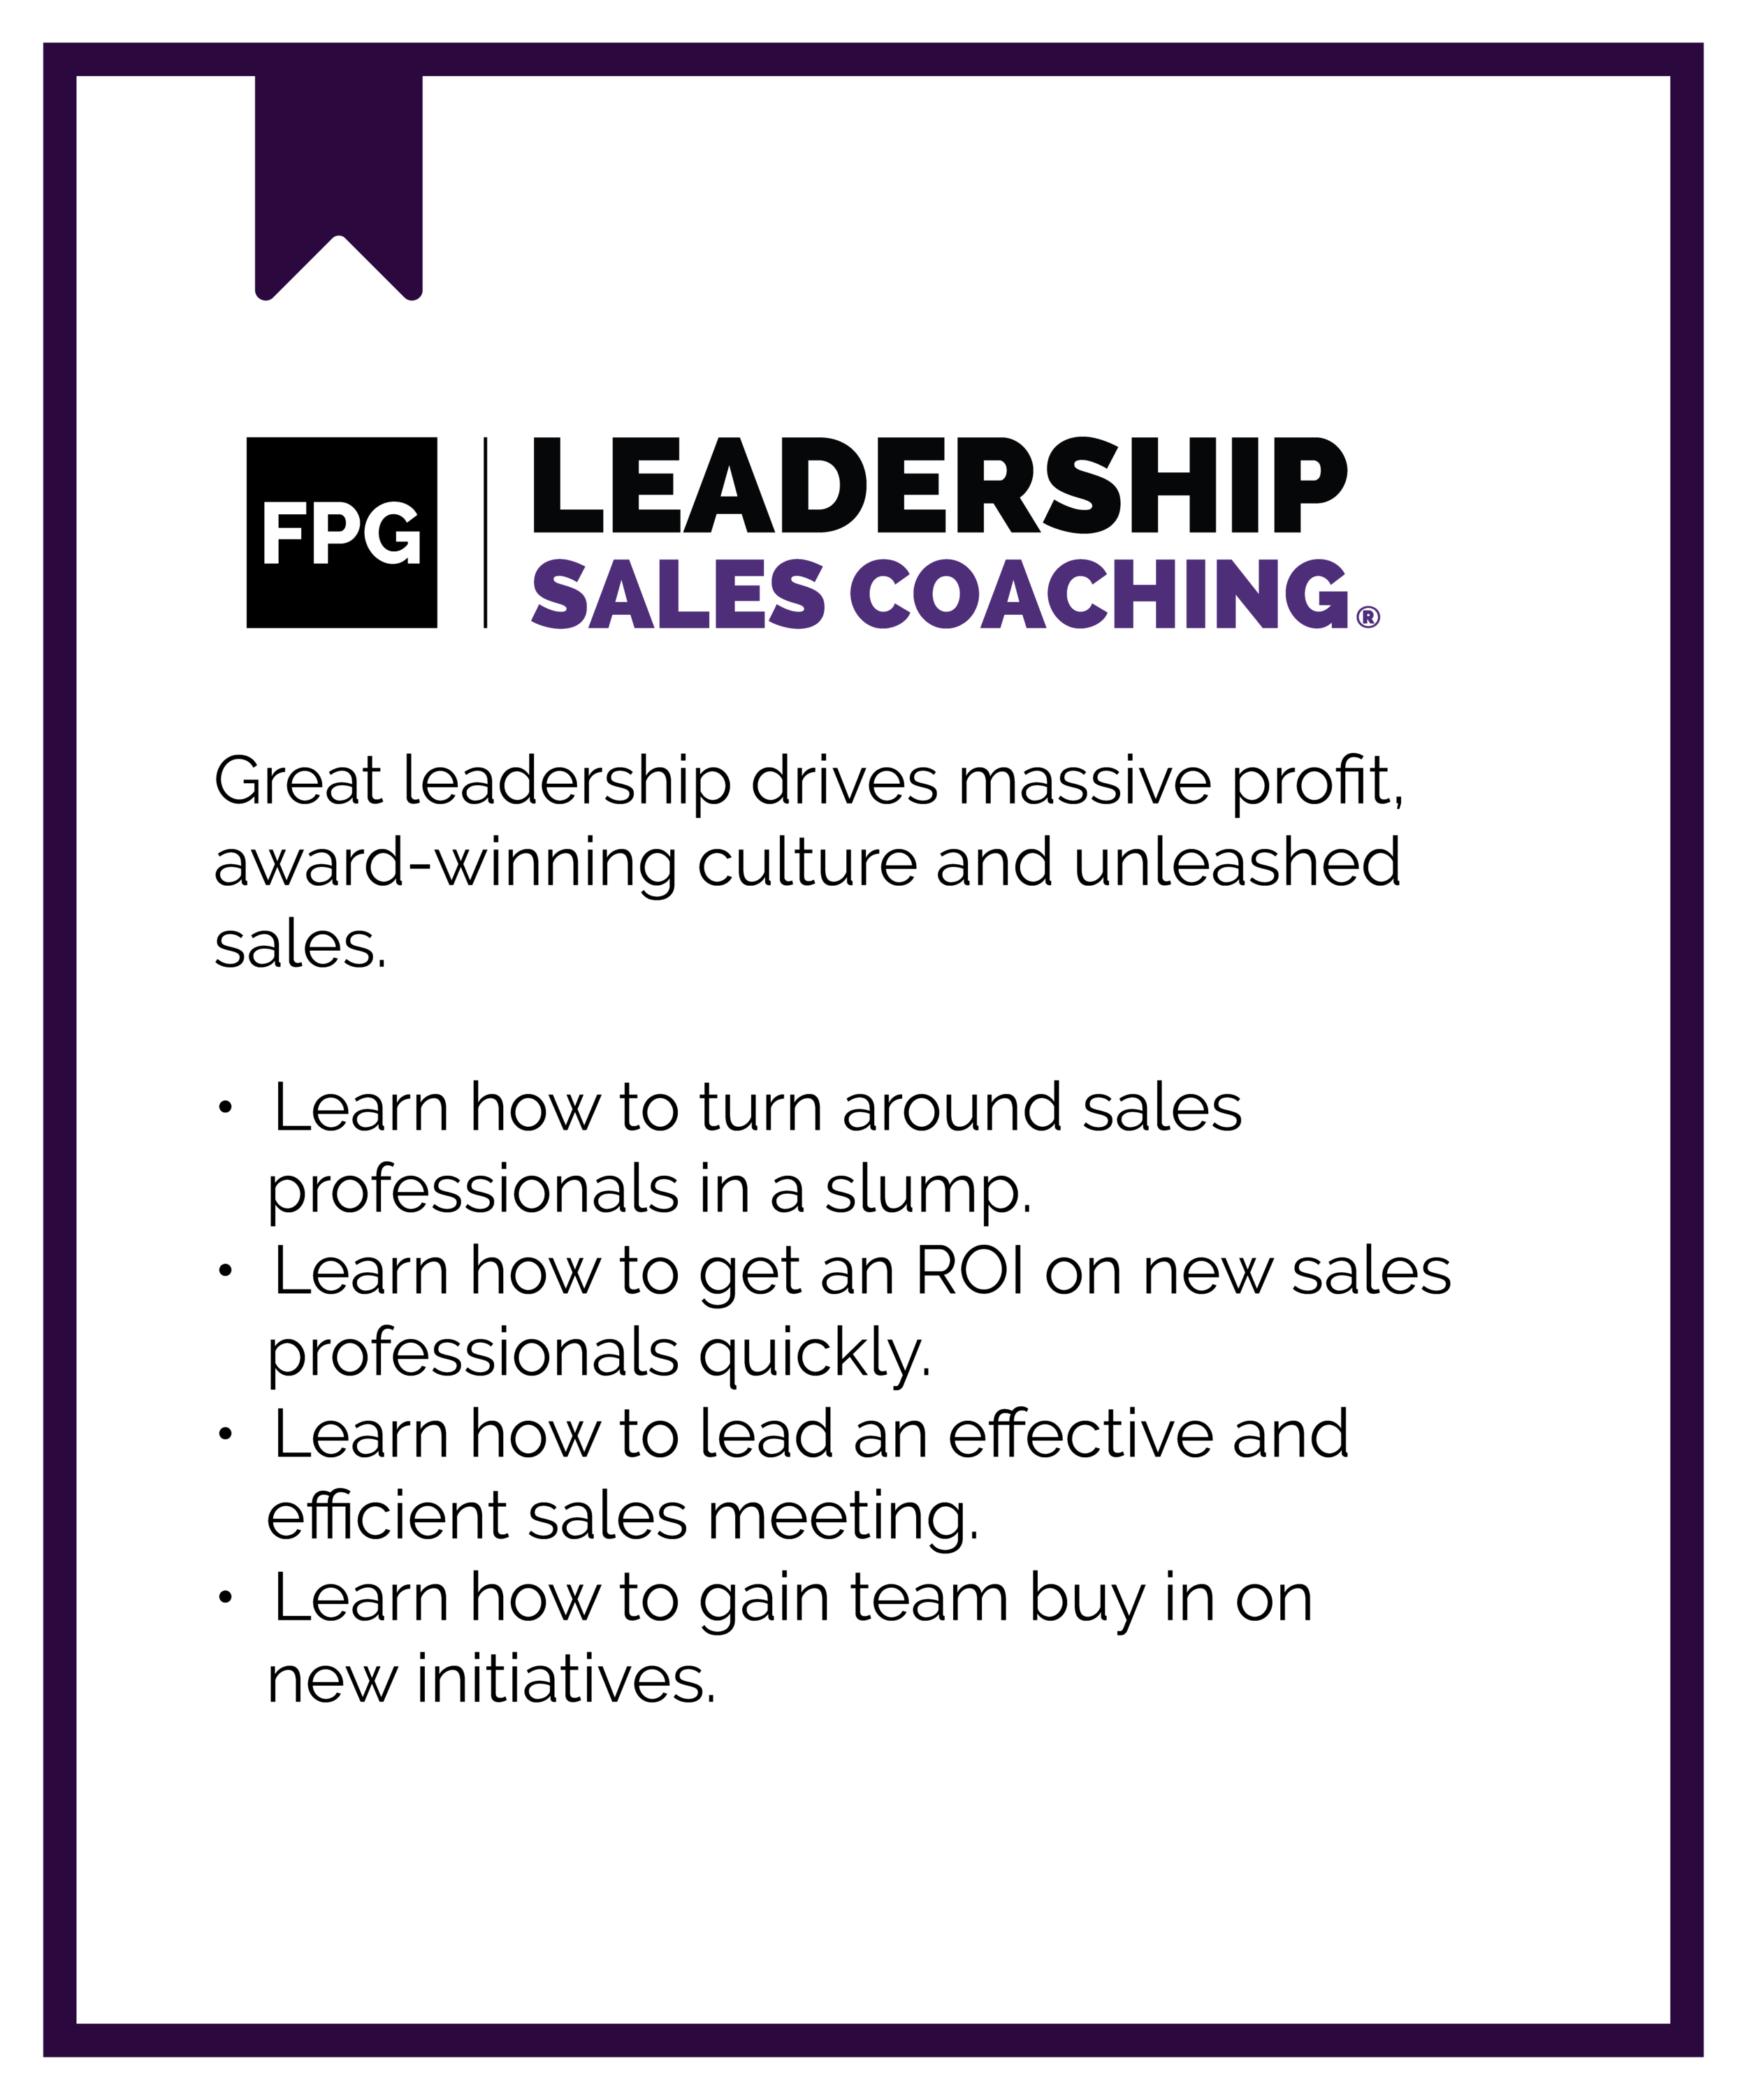 FPG Leadership Sales Coaching. Great leadership drives massive profit, award-winning culture and unleashed sales. Learn how to turn around sales professionals in a slump. Learn how to get an ROI on new sales professionals quickly. Learn how to lead an effective and efficient sales meeting. Learn how to gain team buy in on new initiatives.